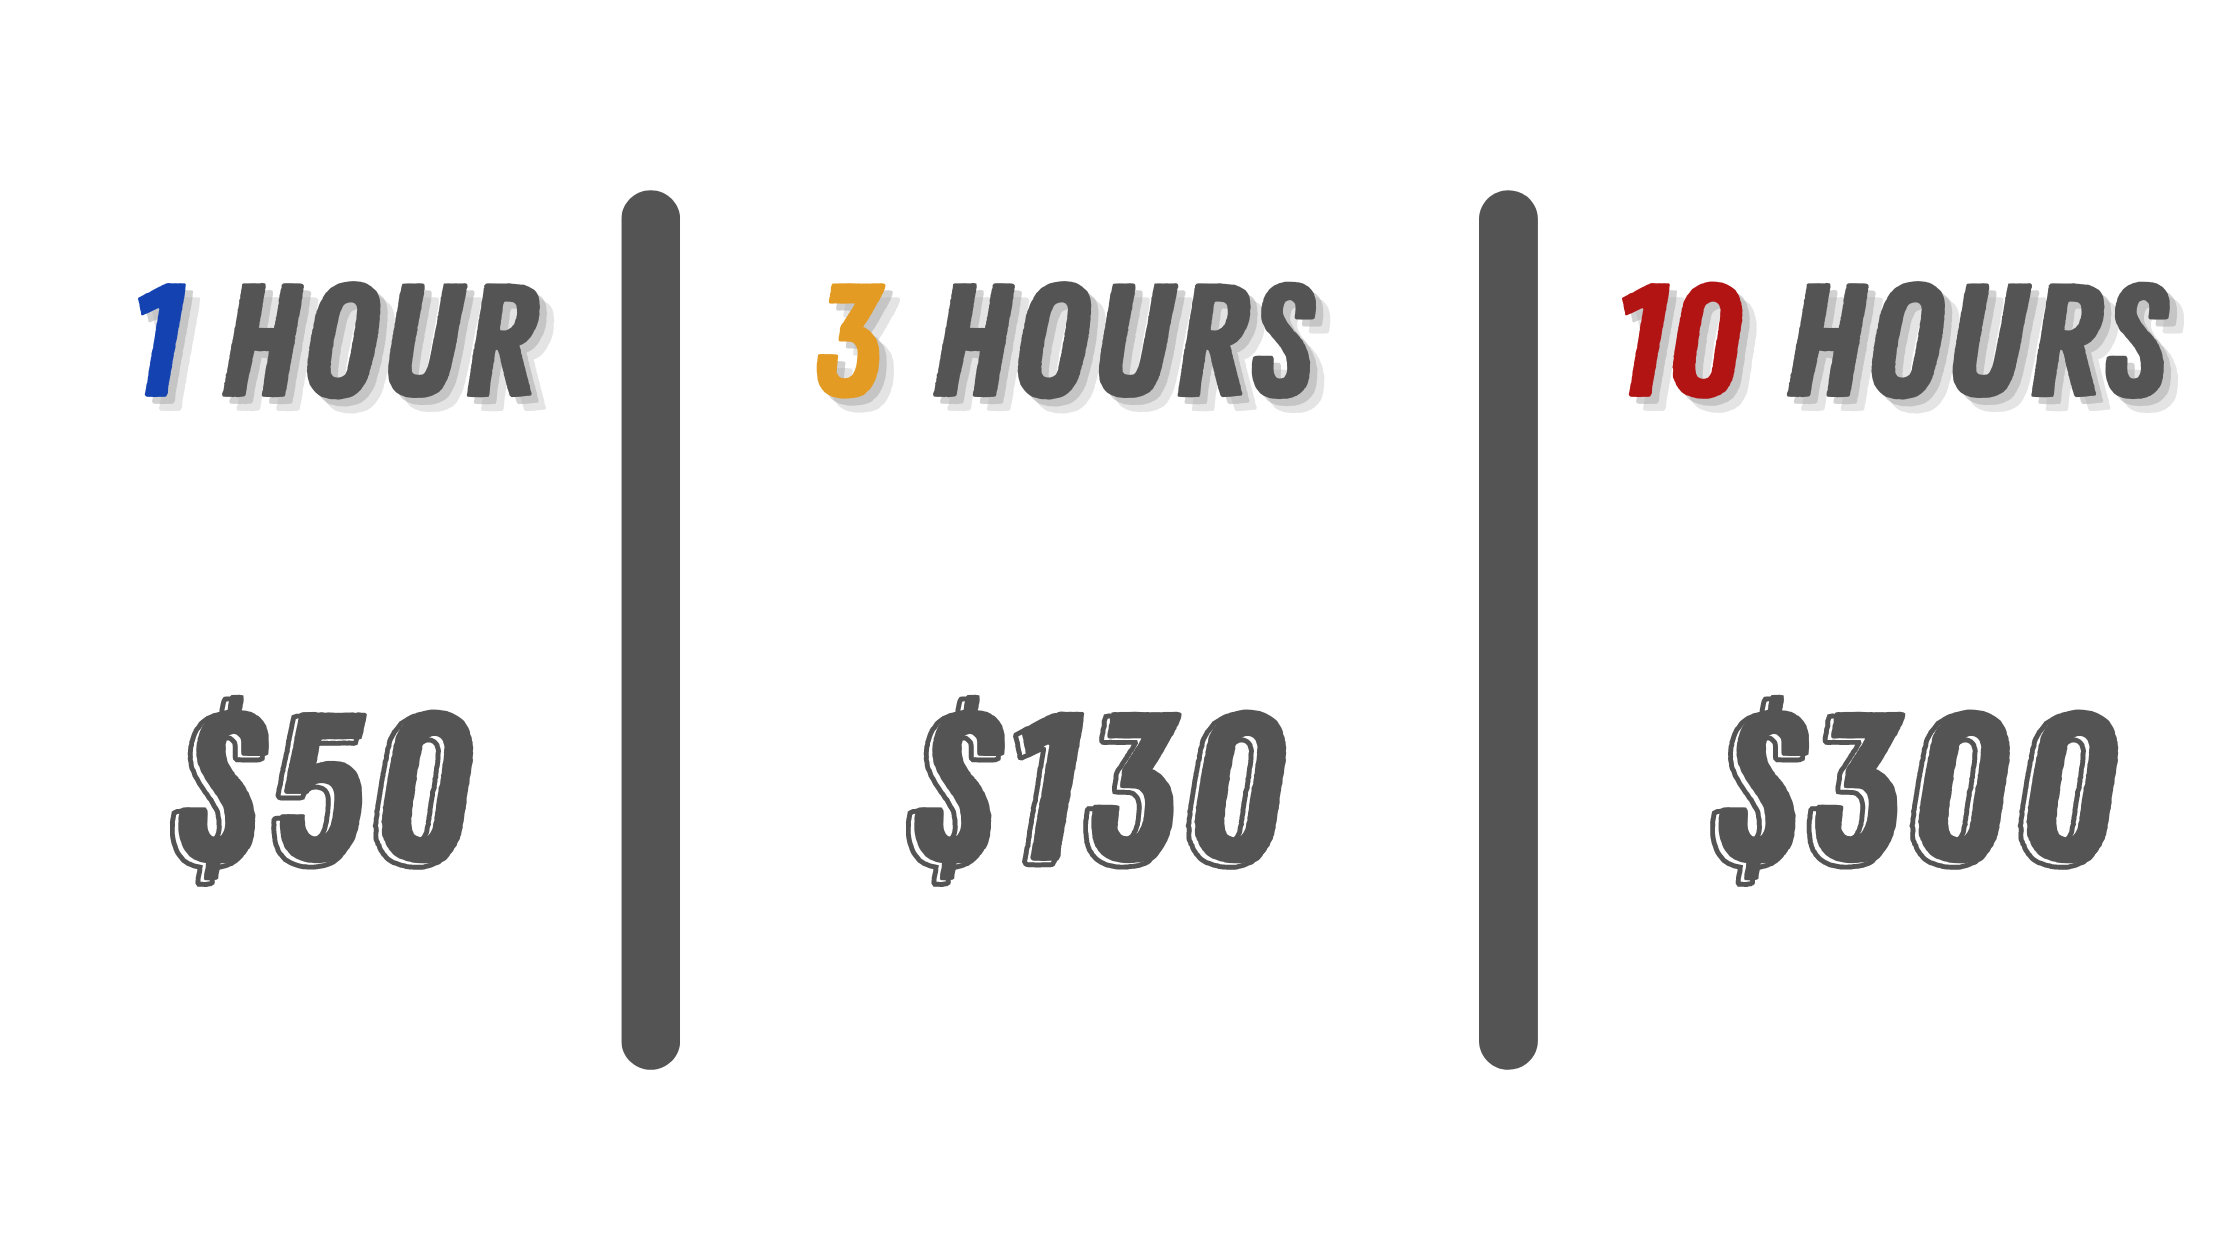 Hourly rates for studio $50 1 hour $130 3 hours $300 10 hours